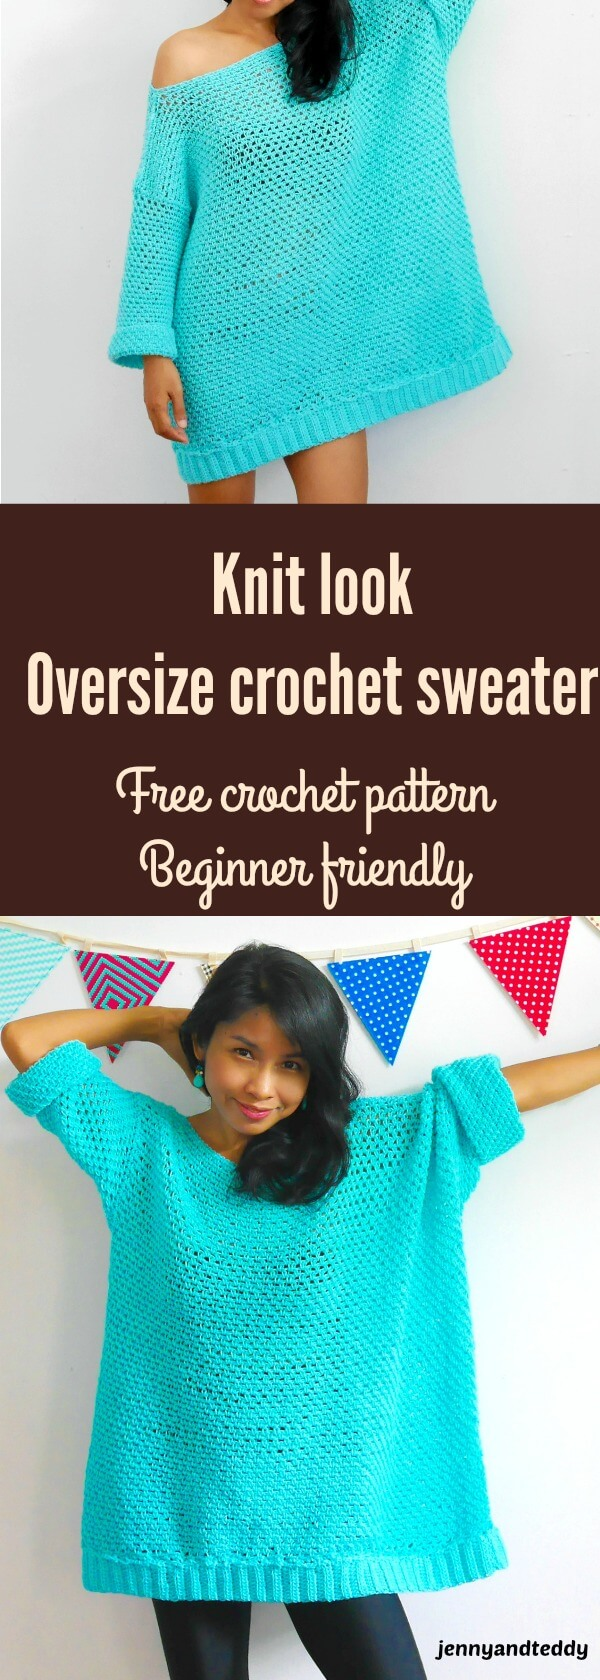 knit look oversize crochet sweater beginner friendly use moss stitch or linen stitch